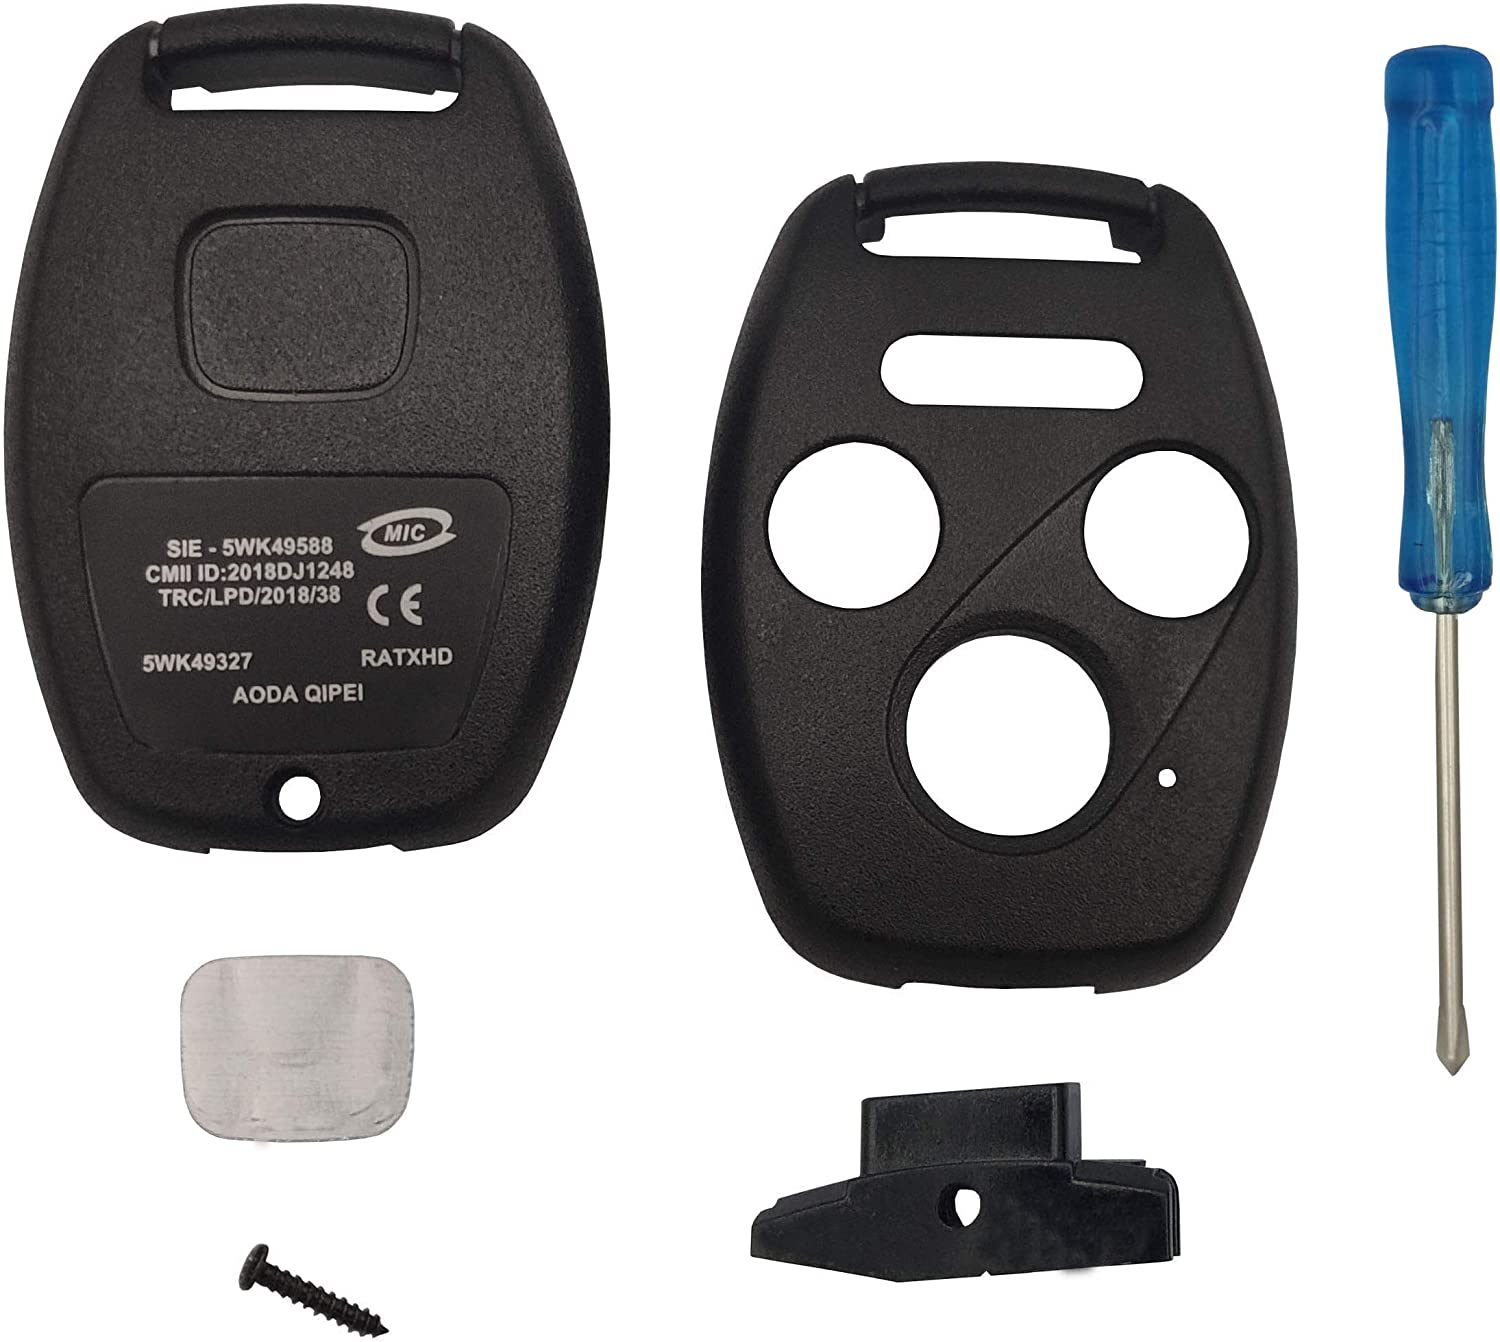 3+1 Buttons Replacement for Keyless Entry Remote Honda Key Fob Case Fit For Honda 2008-2012 Accord 2006-2013 Civic EX 2009-2015 Pilot Fit For Honda 2008-2012 Accord 2006-2013 Civic EX 2009-2015 Pilot